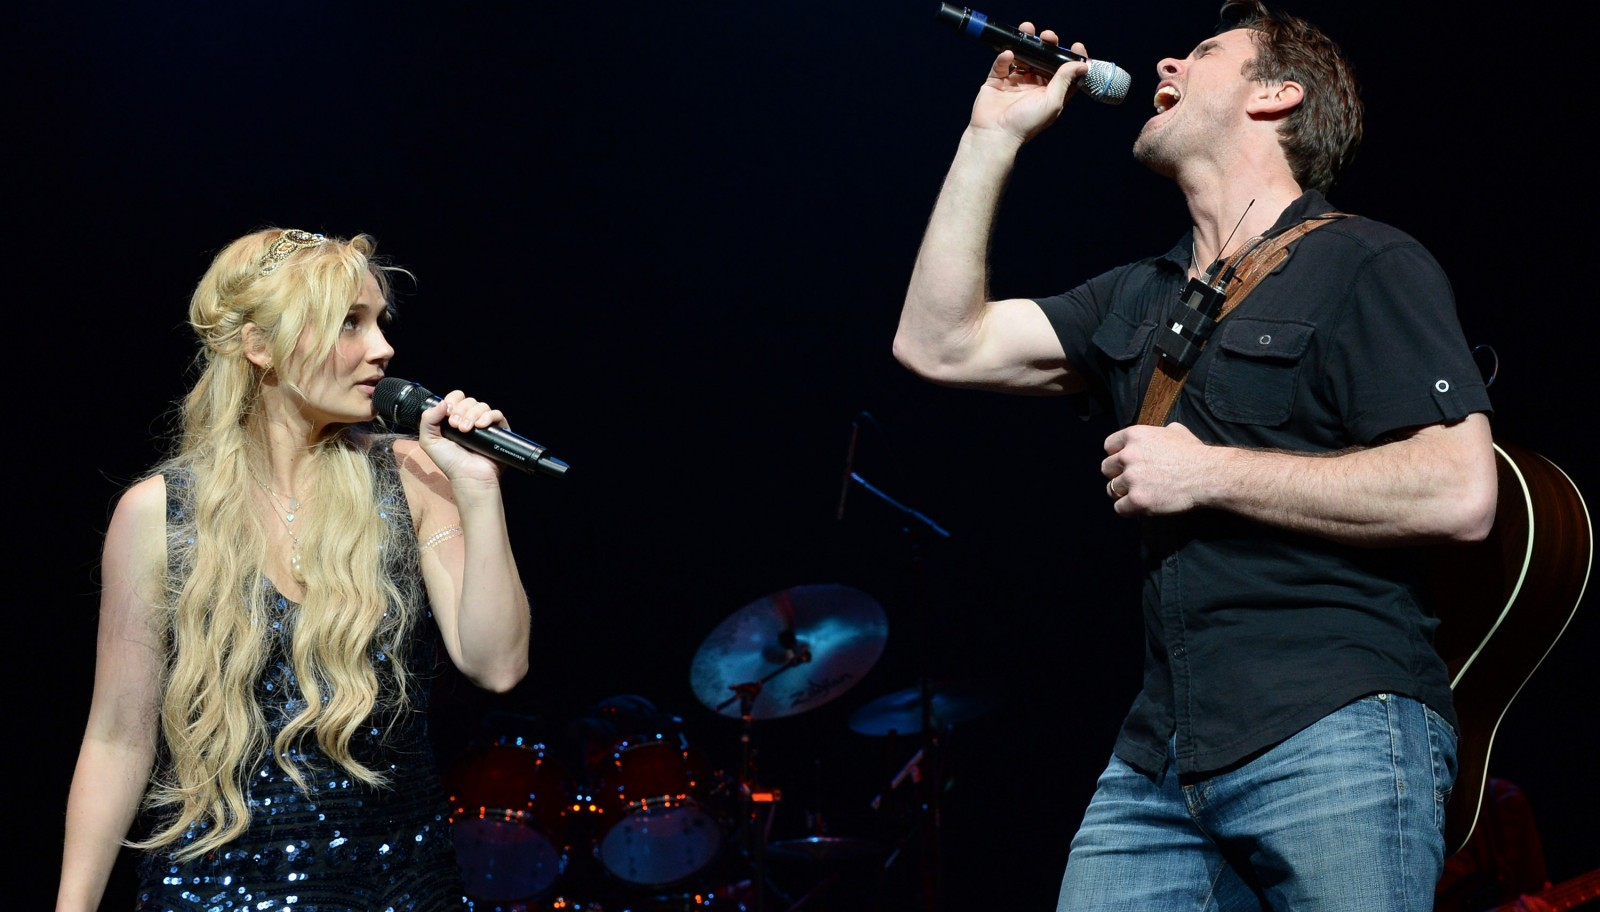 Clare Bowen and Charles Esten will perform at the University at Buffalo Center for the Arts. (Getty Images)